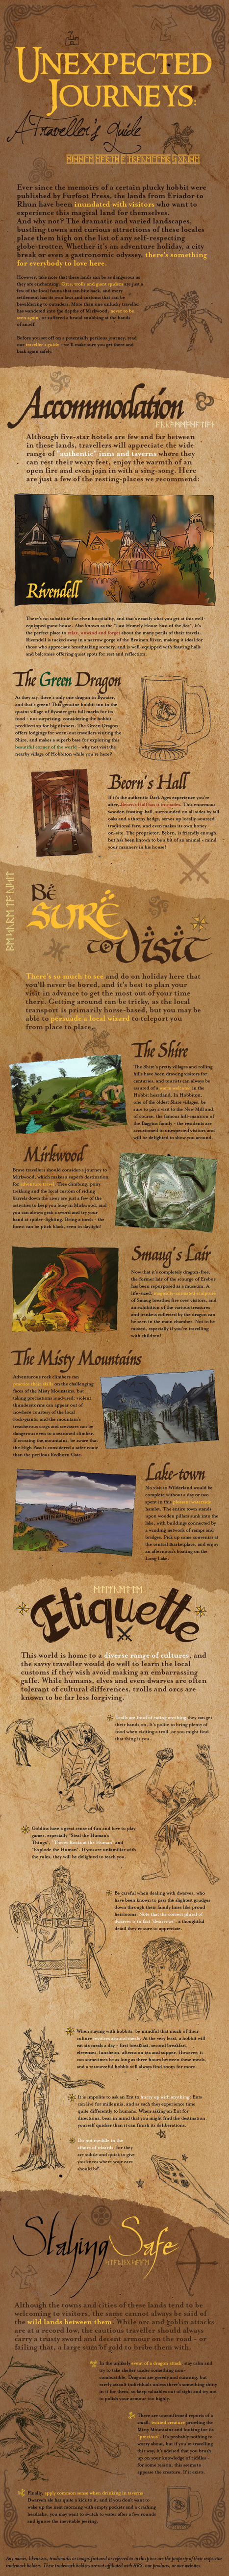 Unexpected Journeys: A Traveller's Guide to Middle Earth [infographic] | Travel and Cheap Flights | Scoop.it